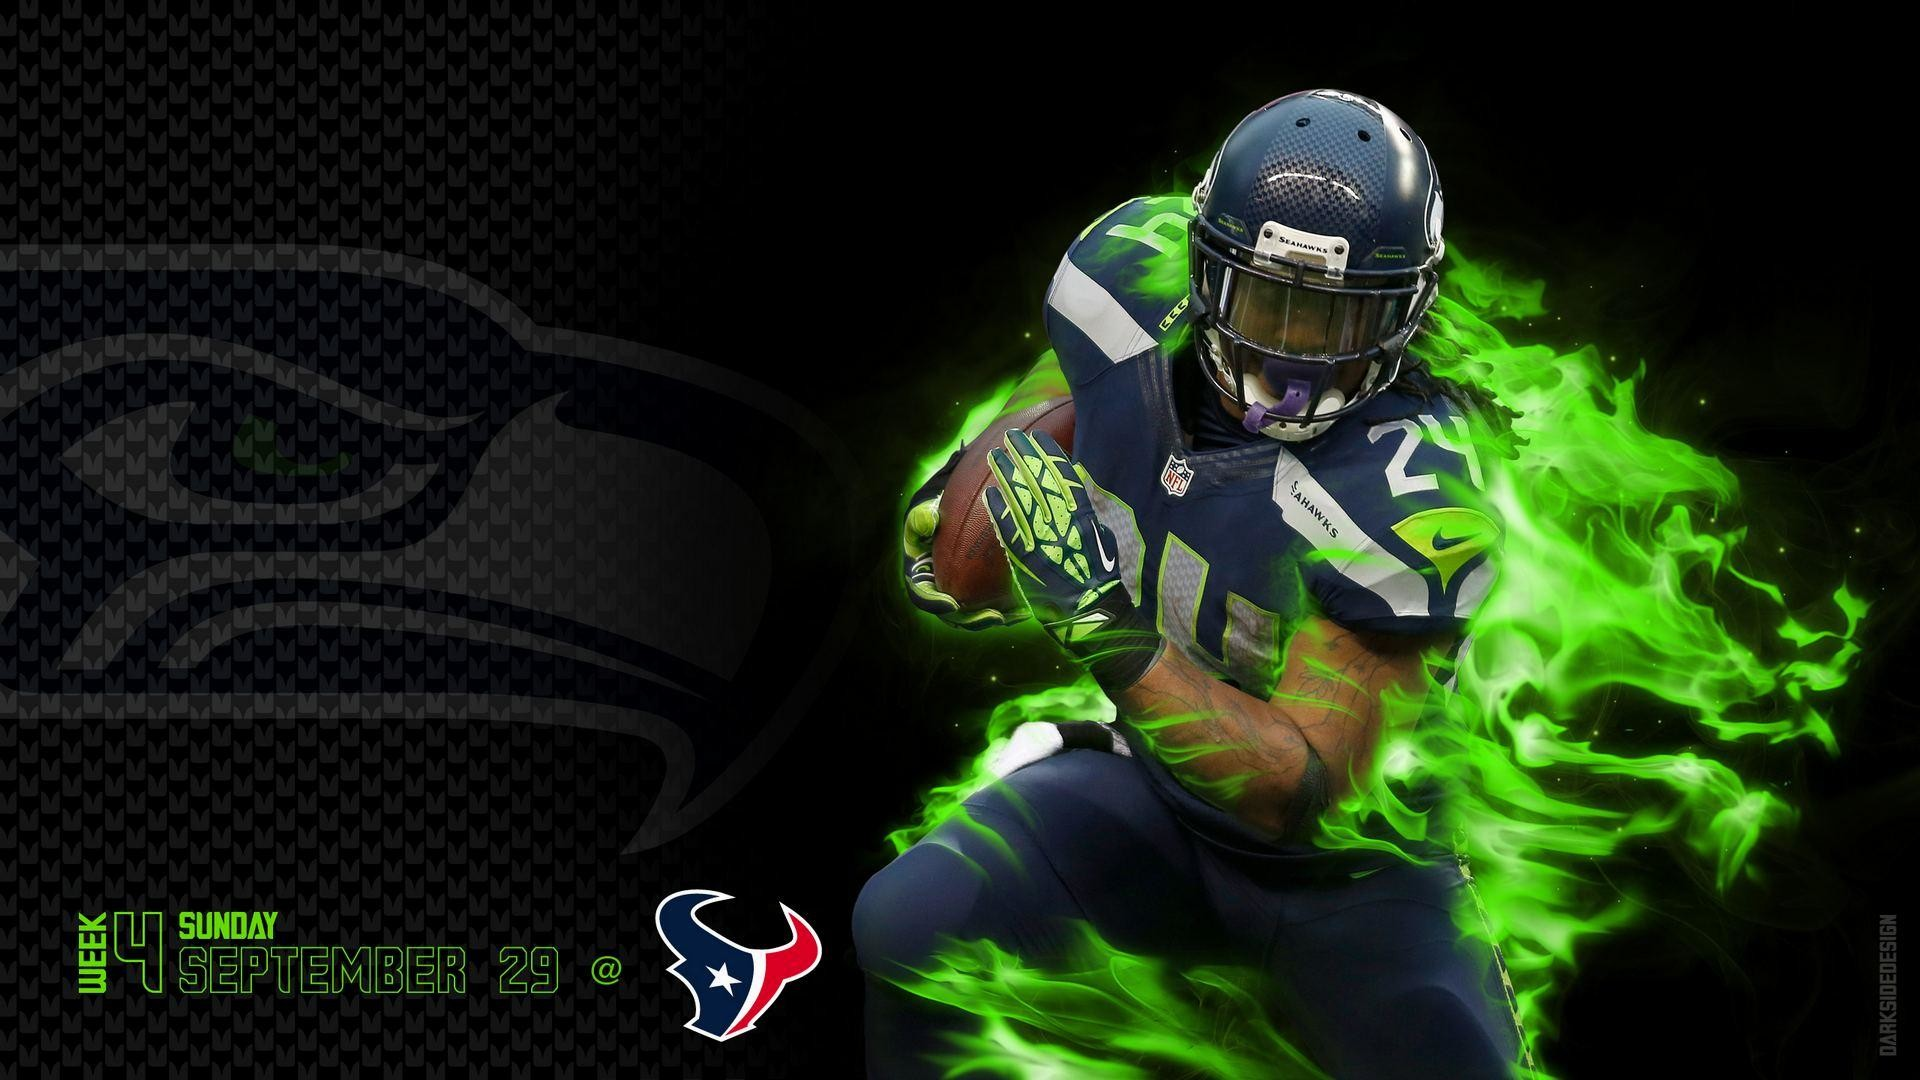 Marshawn Lynch Wallpaper 84 images 1920x1080